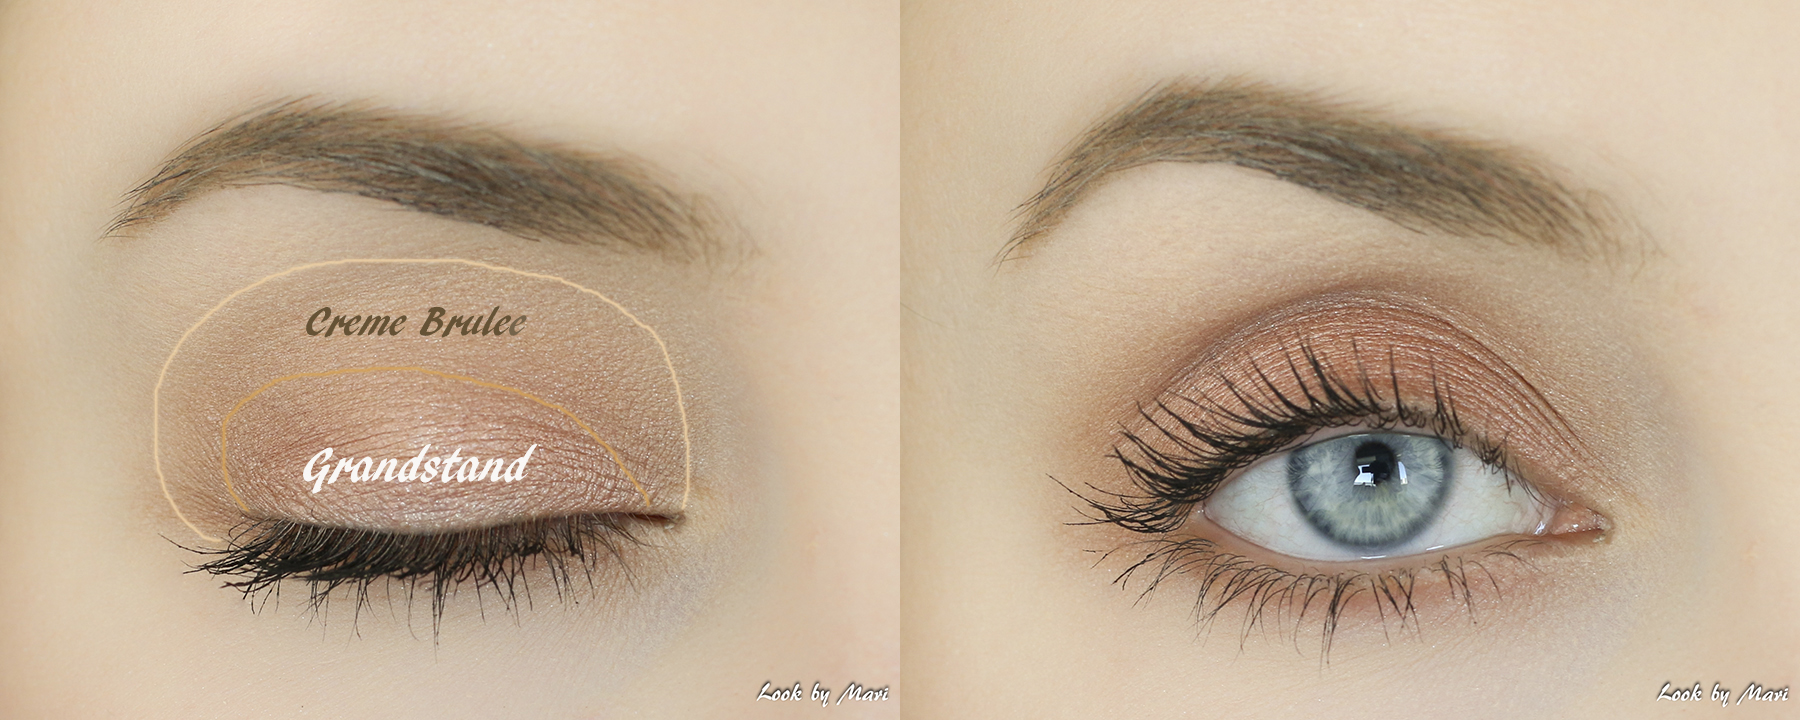 4 makeup geek creme brulee grandstand swatches review